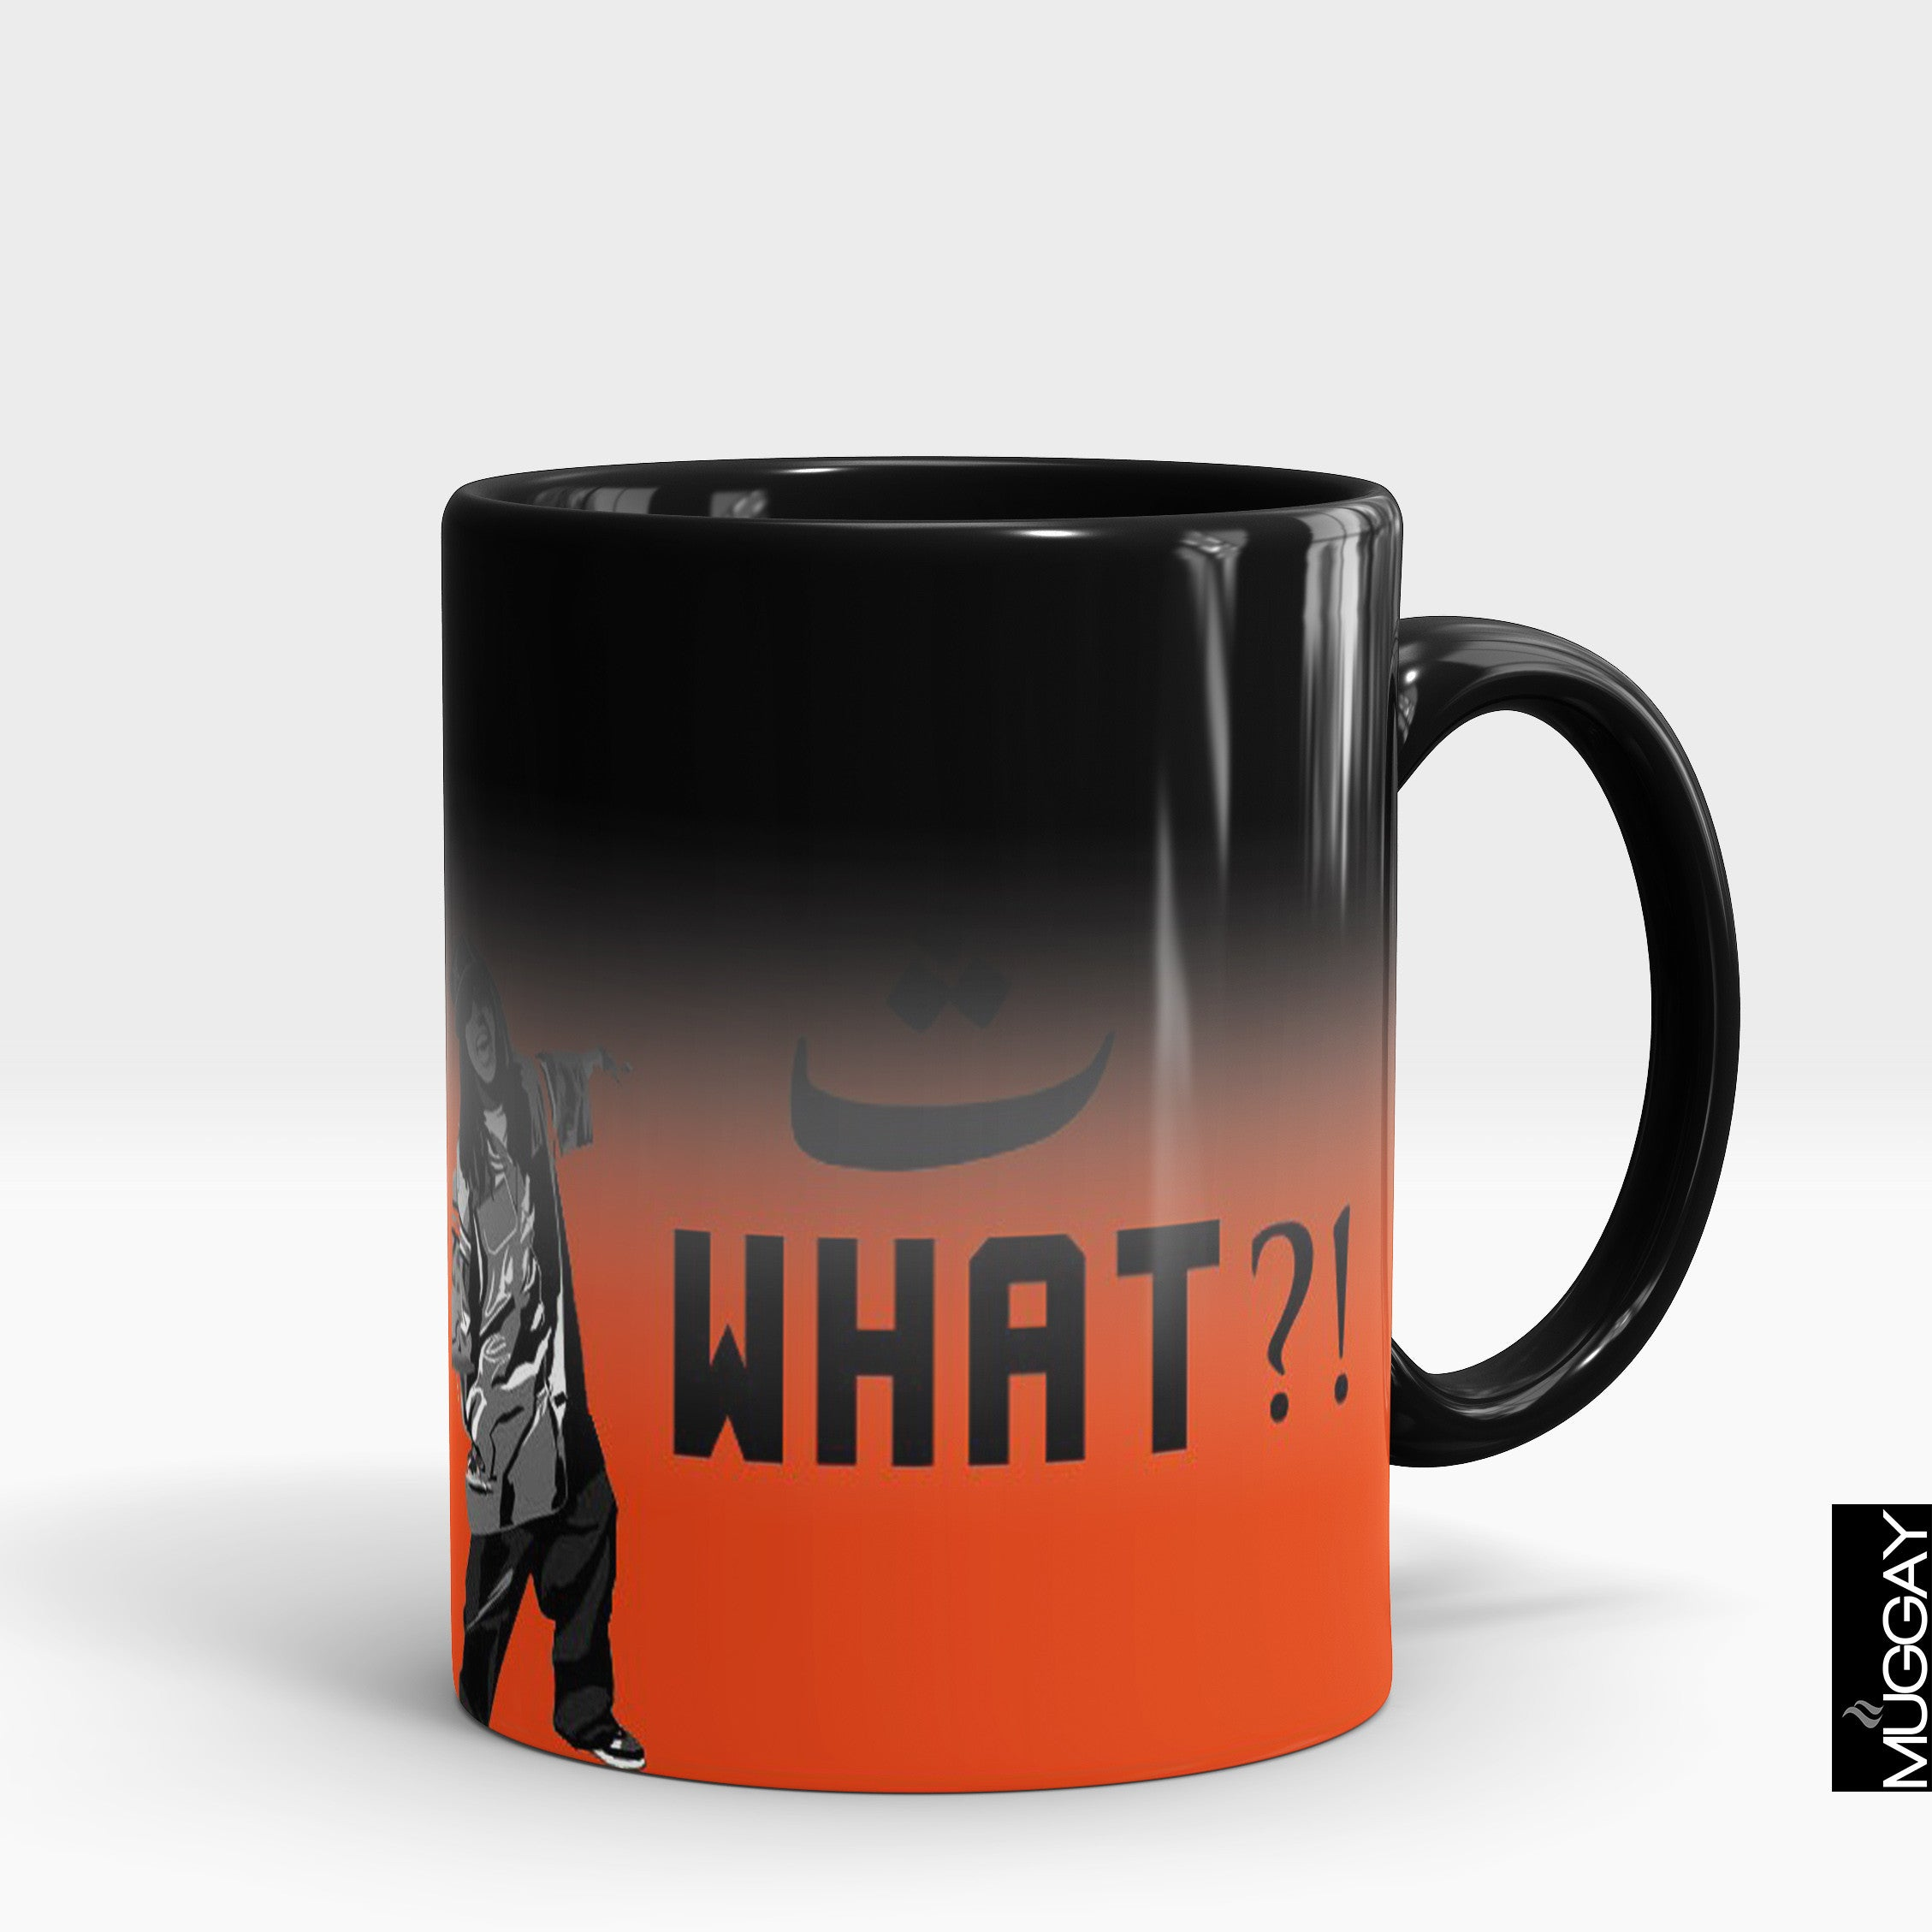 Desi funny Mugs15 - Muggay.com - Mugs - Printing shop - truck Art mugs - Mug printing - Customized printing - Digital printing - Muggay